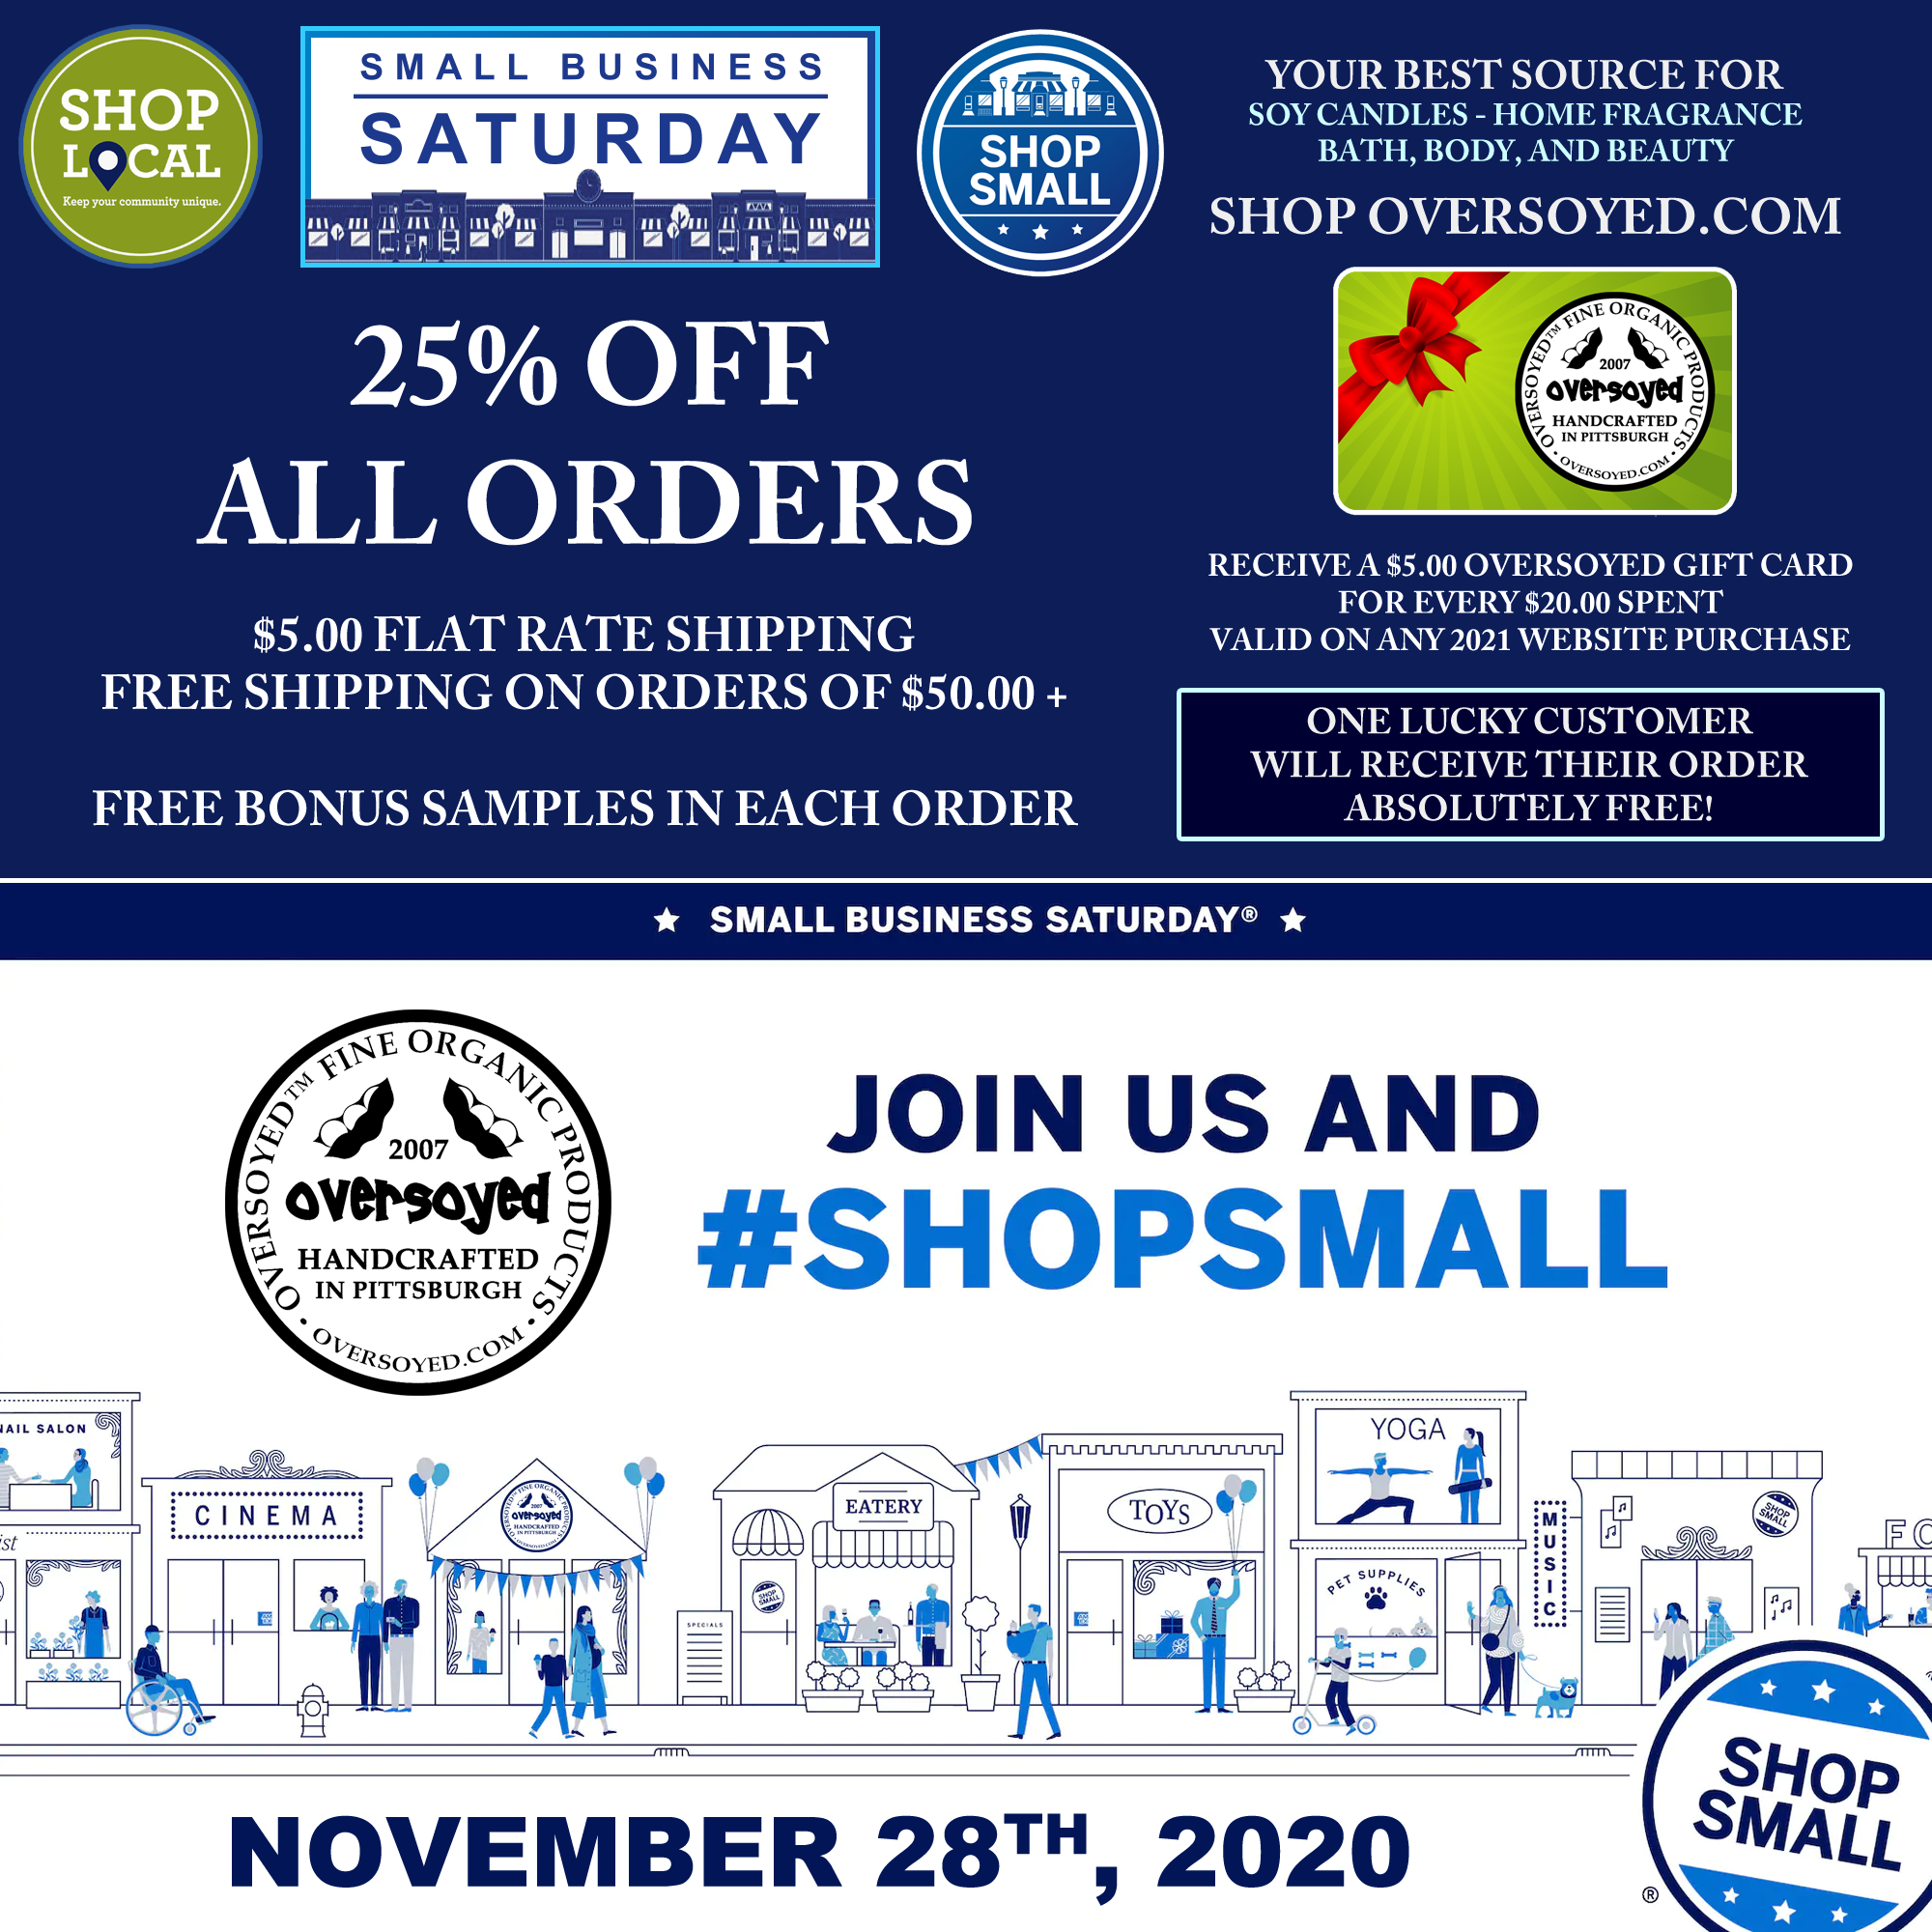 OverSoyed Fine Organic Products - Small Business Saturday